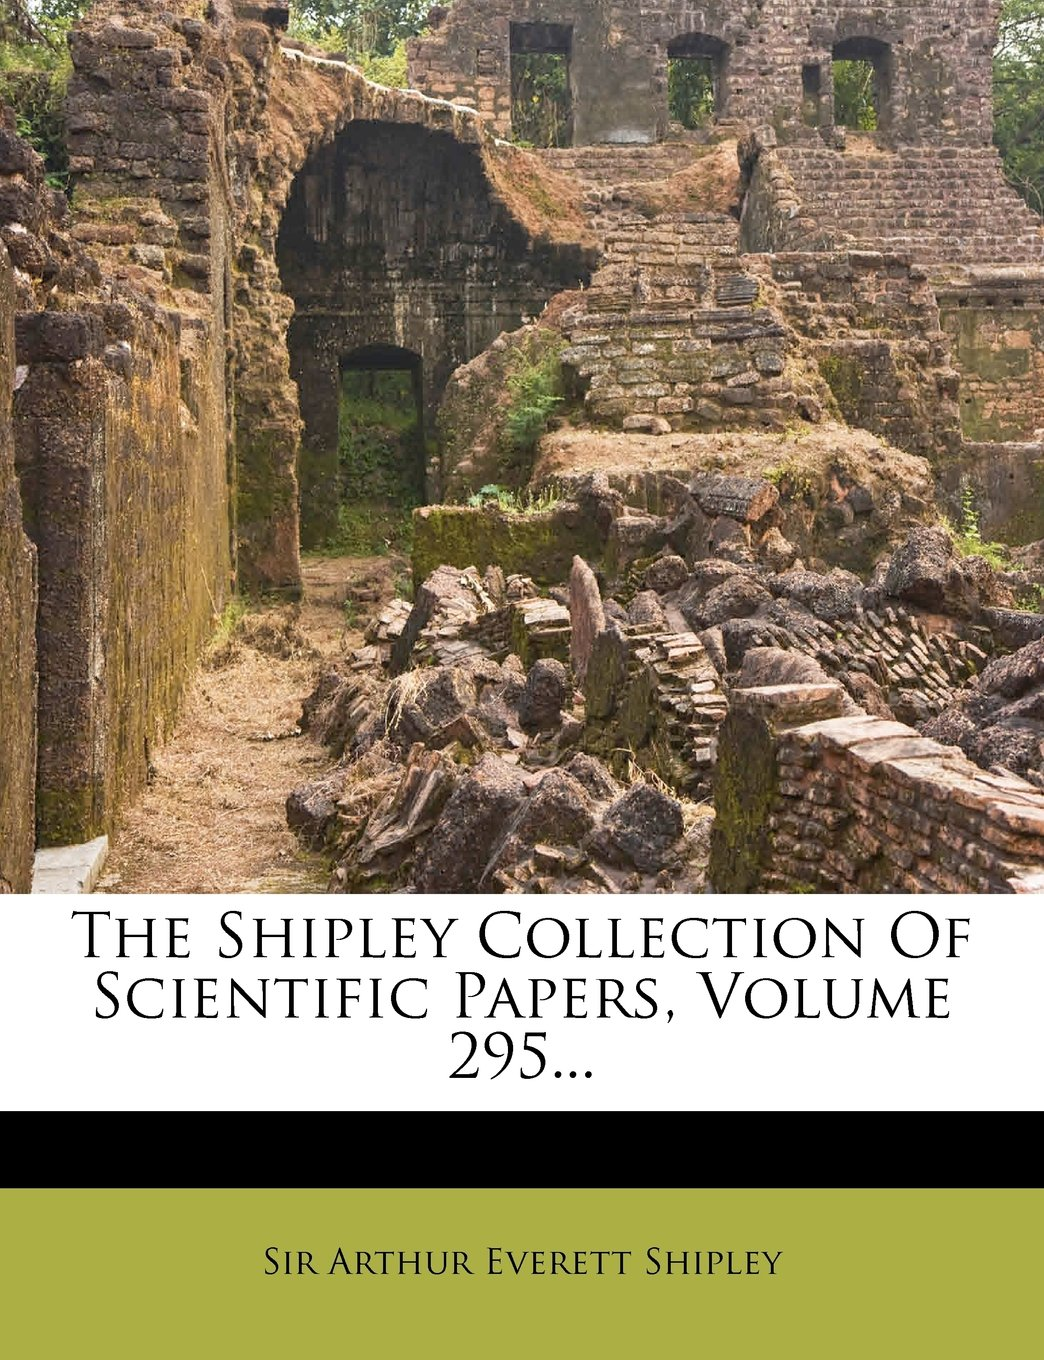 Download The Shipley Collection Of Scientific Papers, Volume 295... ebook